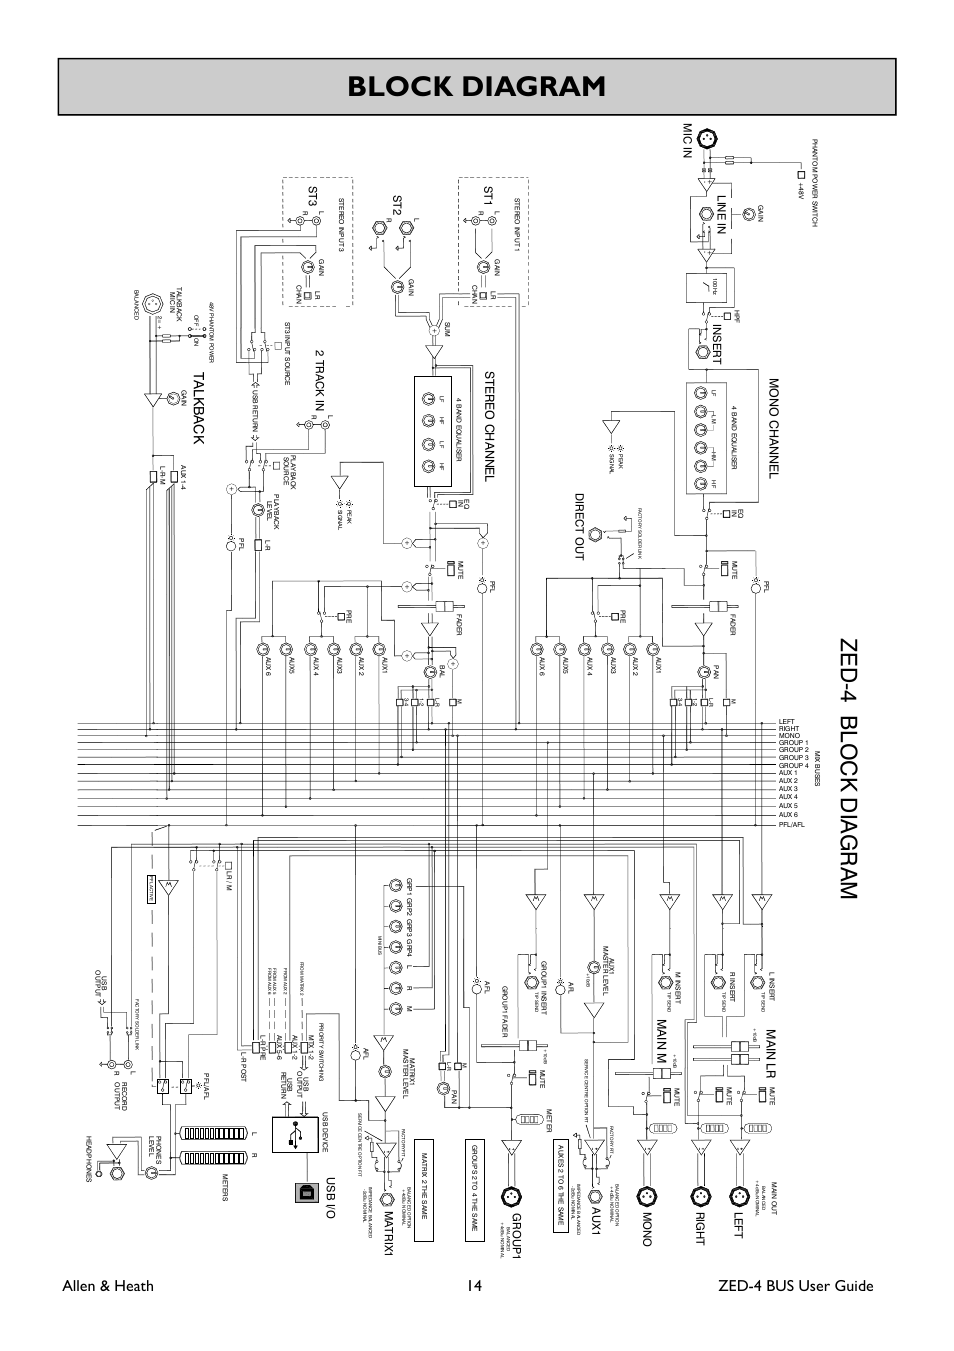 Block diagram, Allen & heath 14 zed-4 bus user guide, Ma